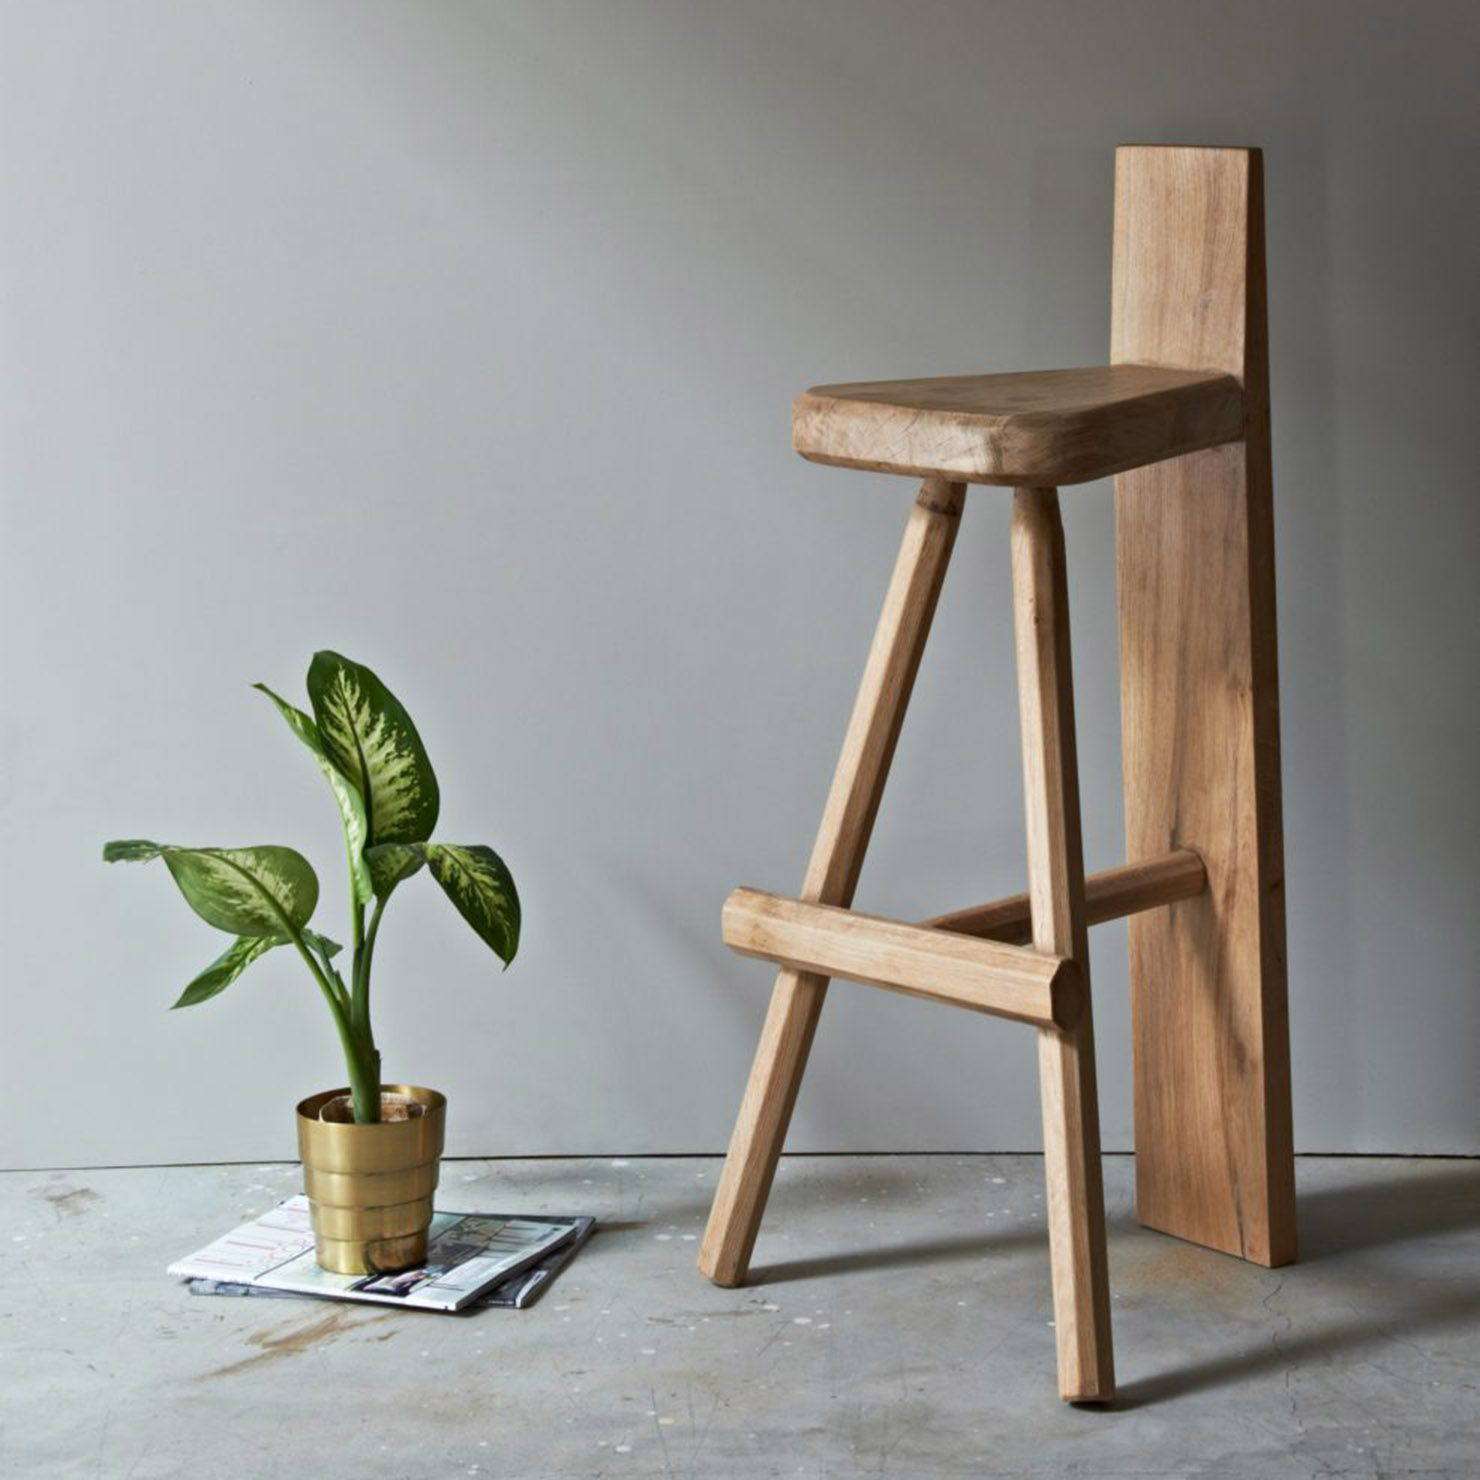 Incredible Bar Stool Light Oak 134 This Stool Embodies The Traditions Caraccident5 Cool Chair Designs And Ideas Caraccident5Info